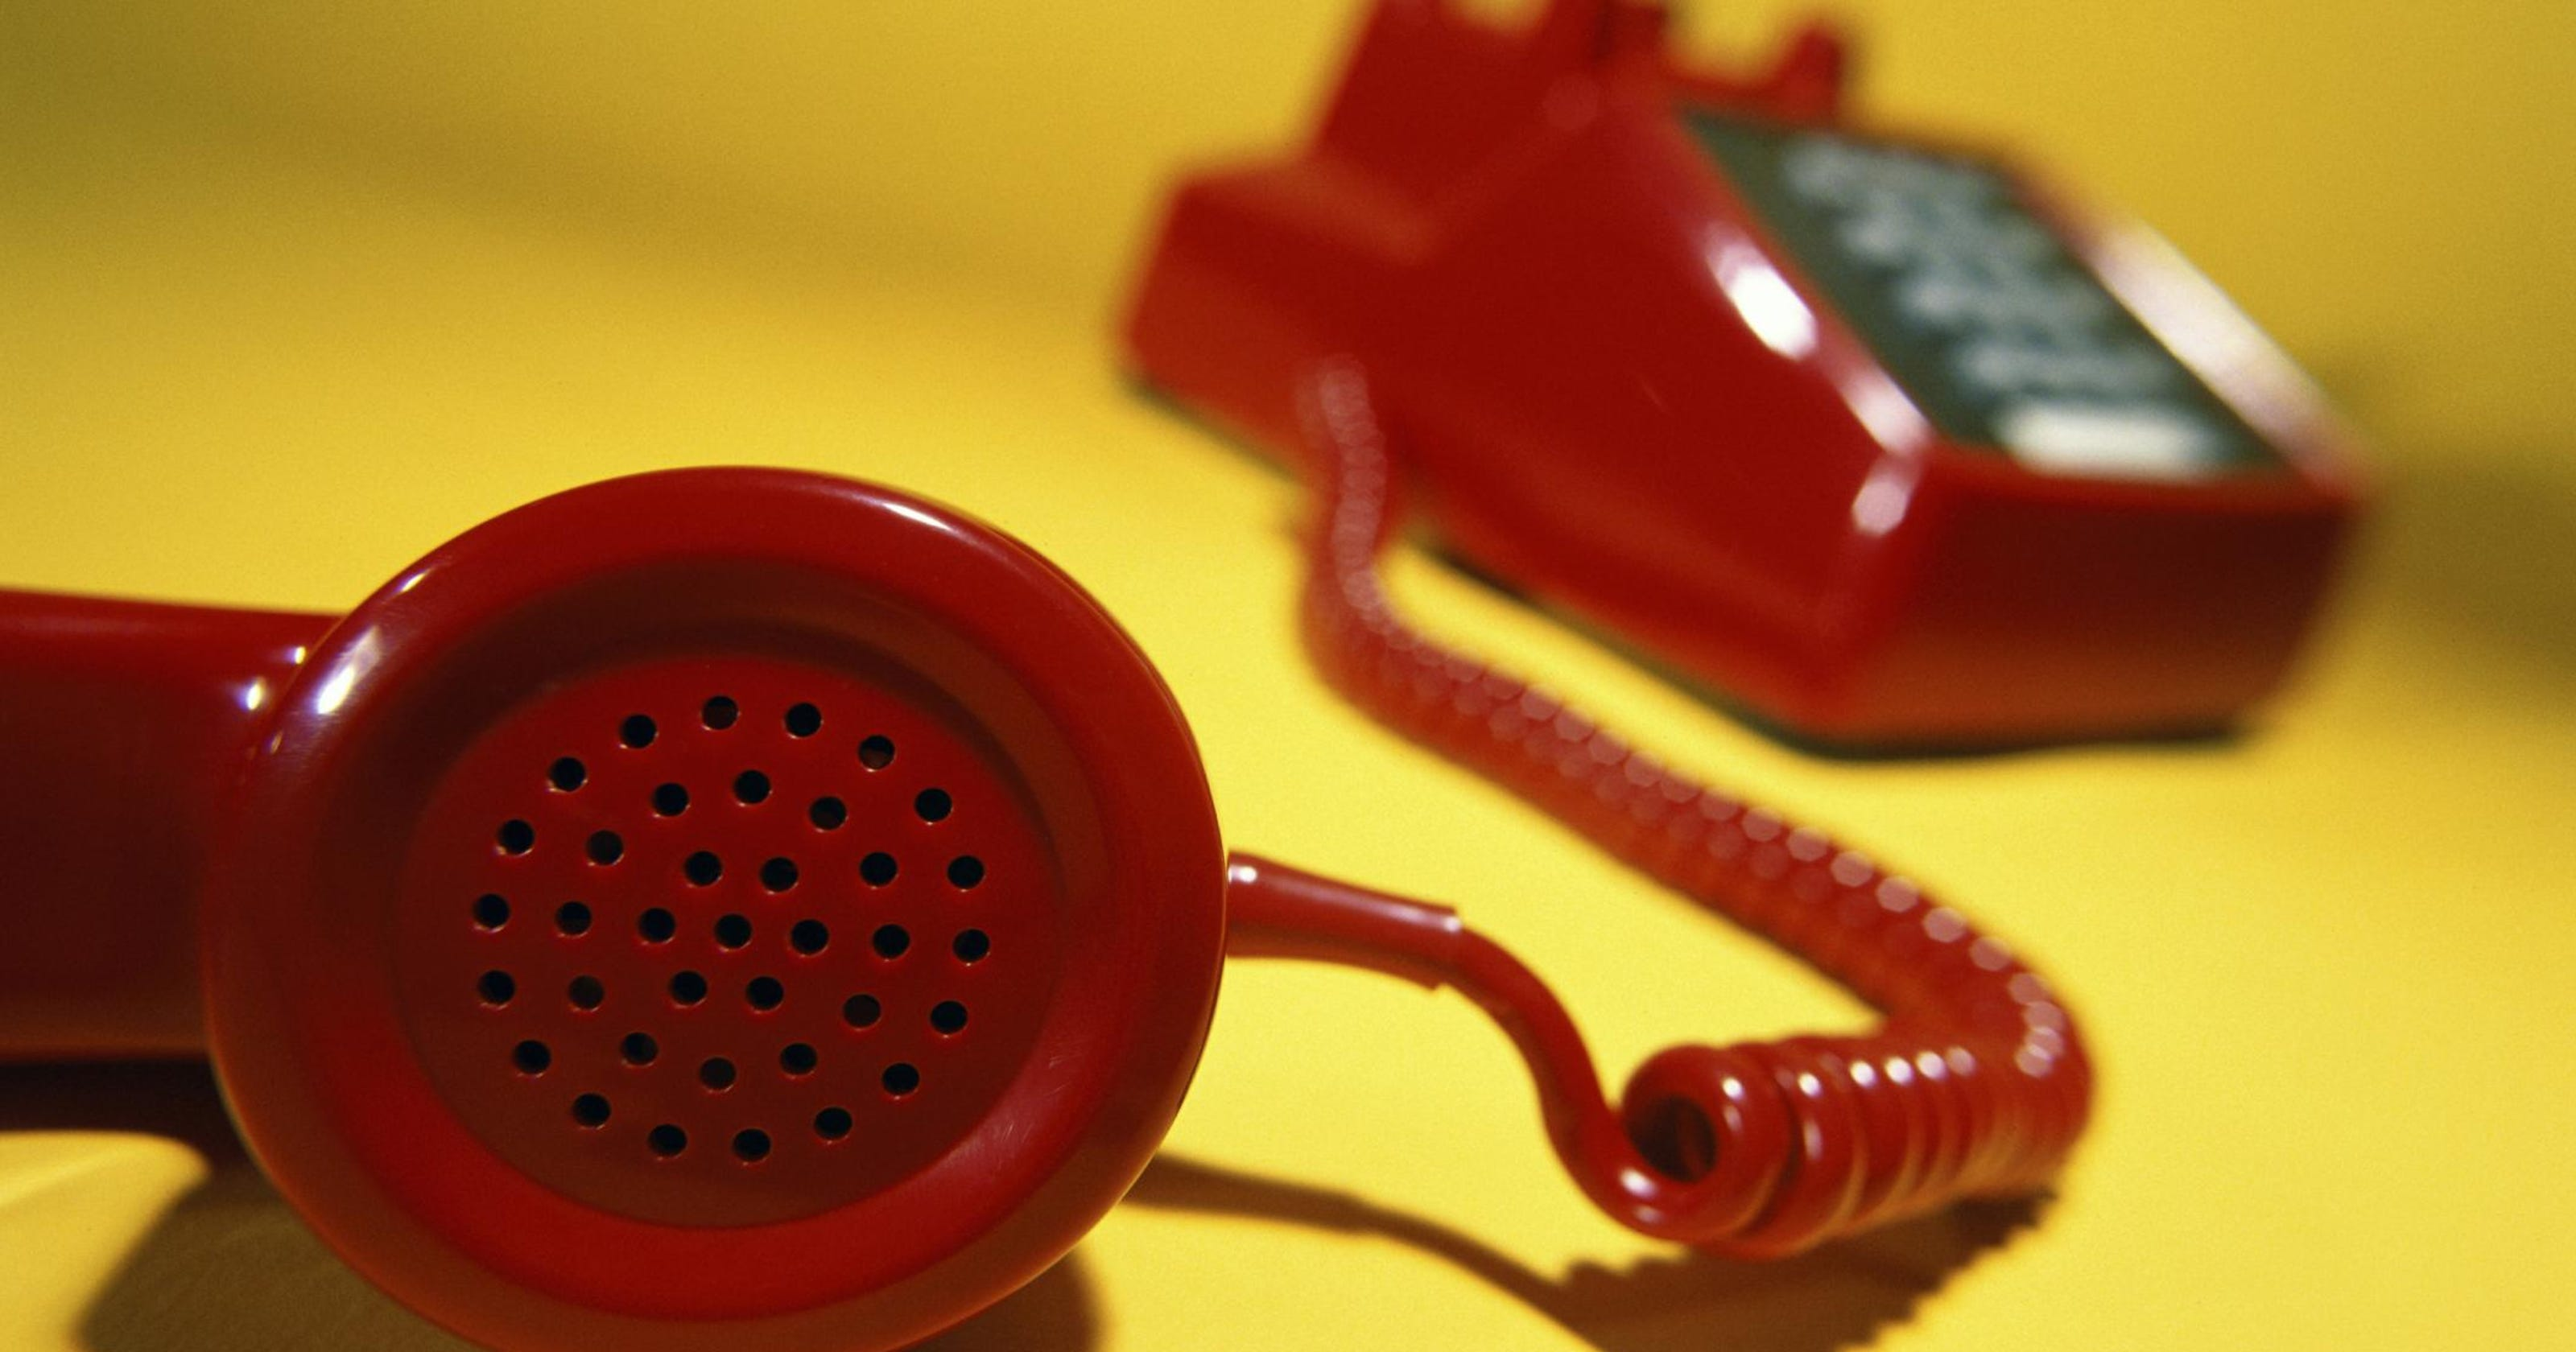 Vets group petitions Supreme Court to hear robocall case